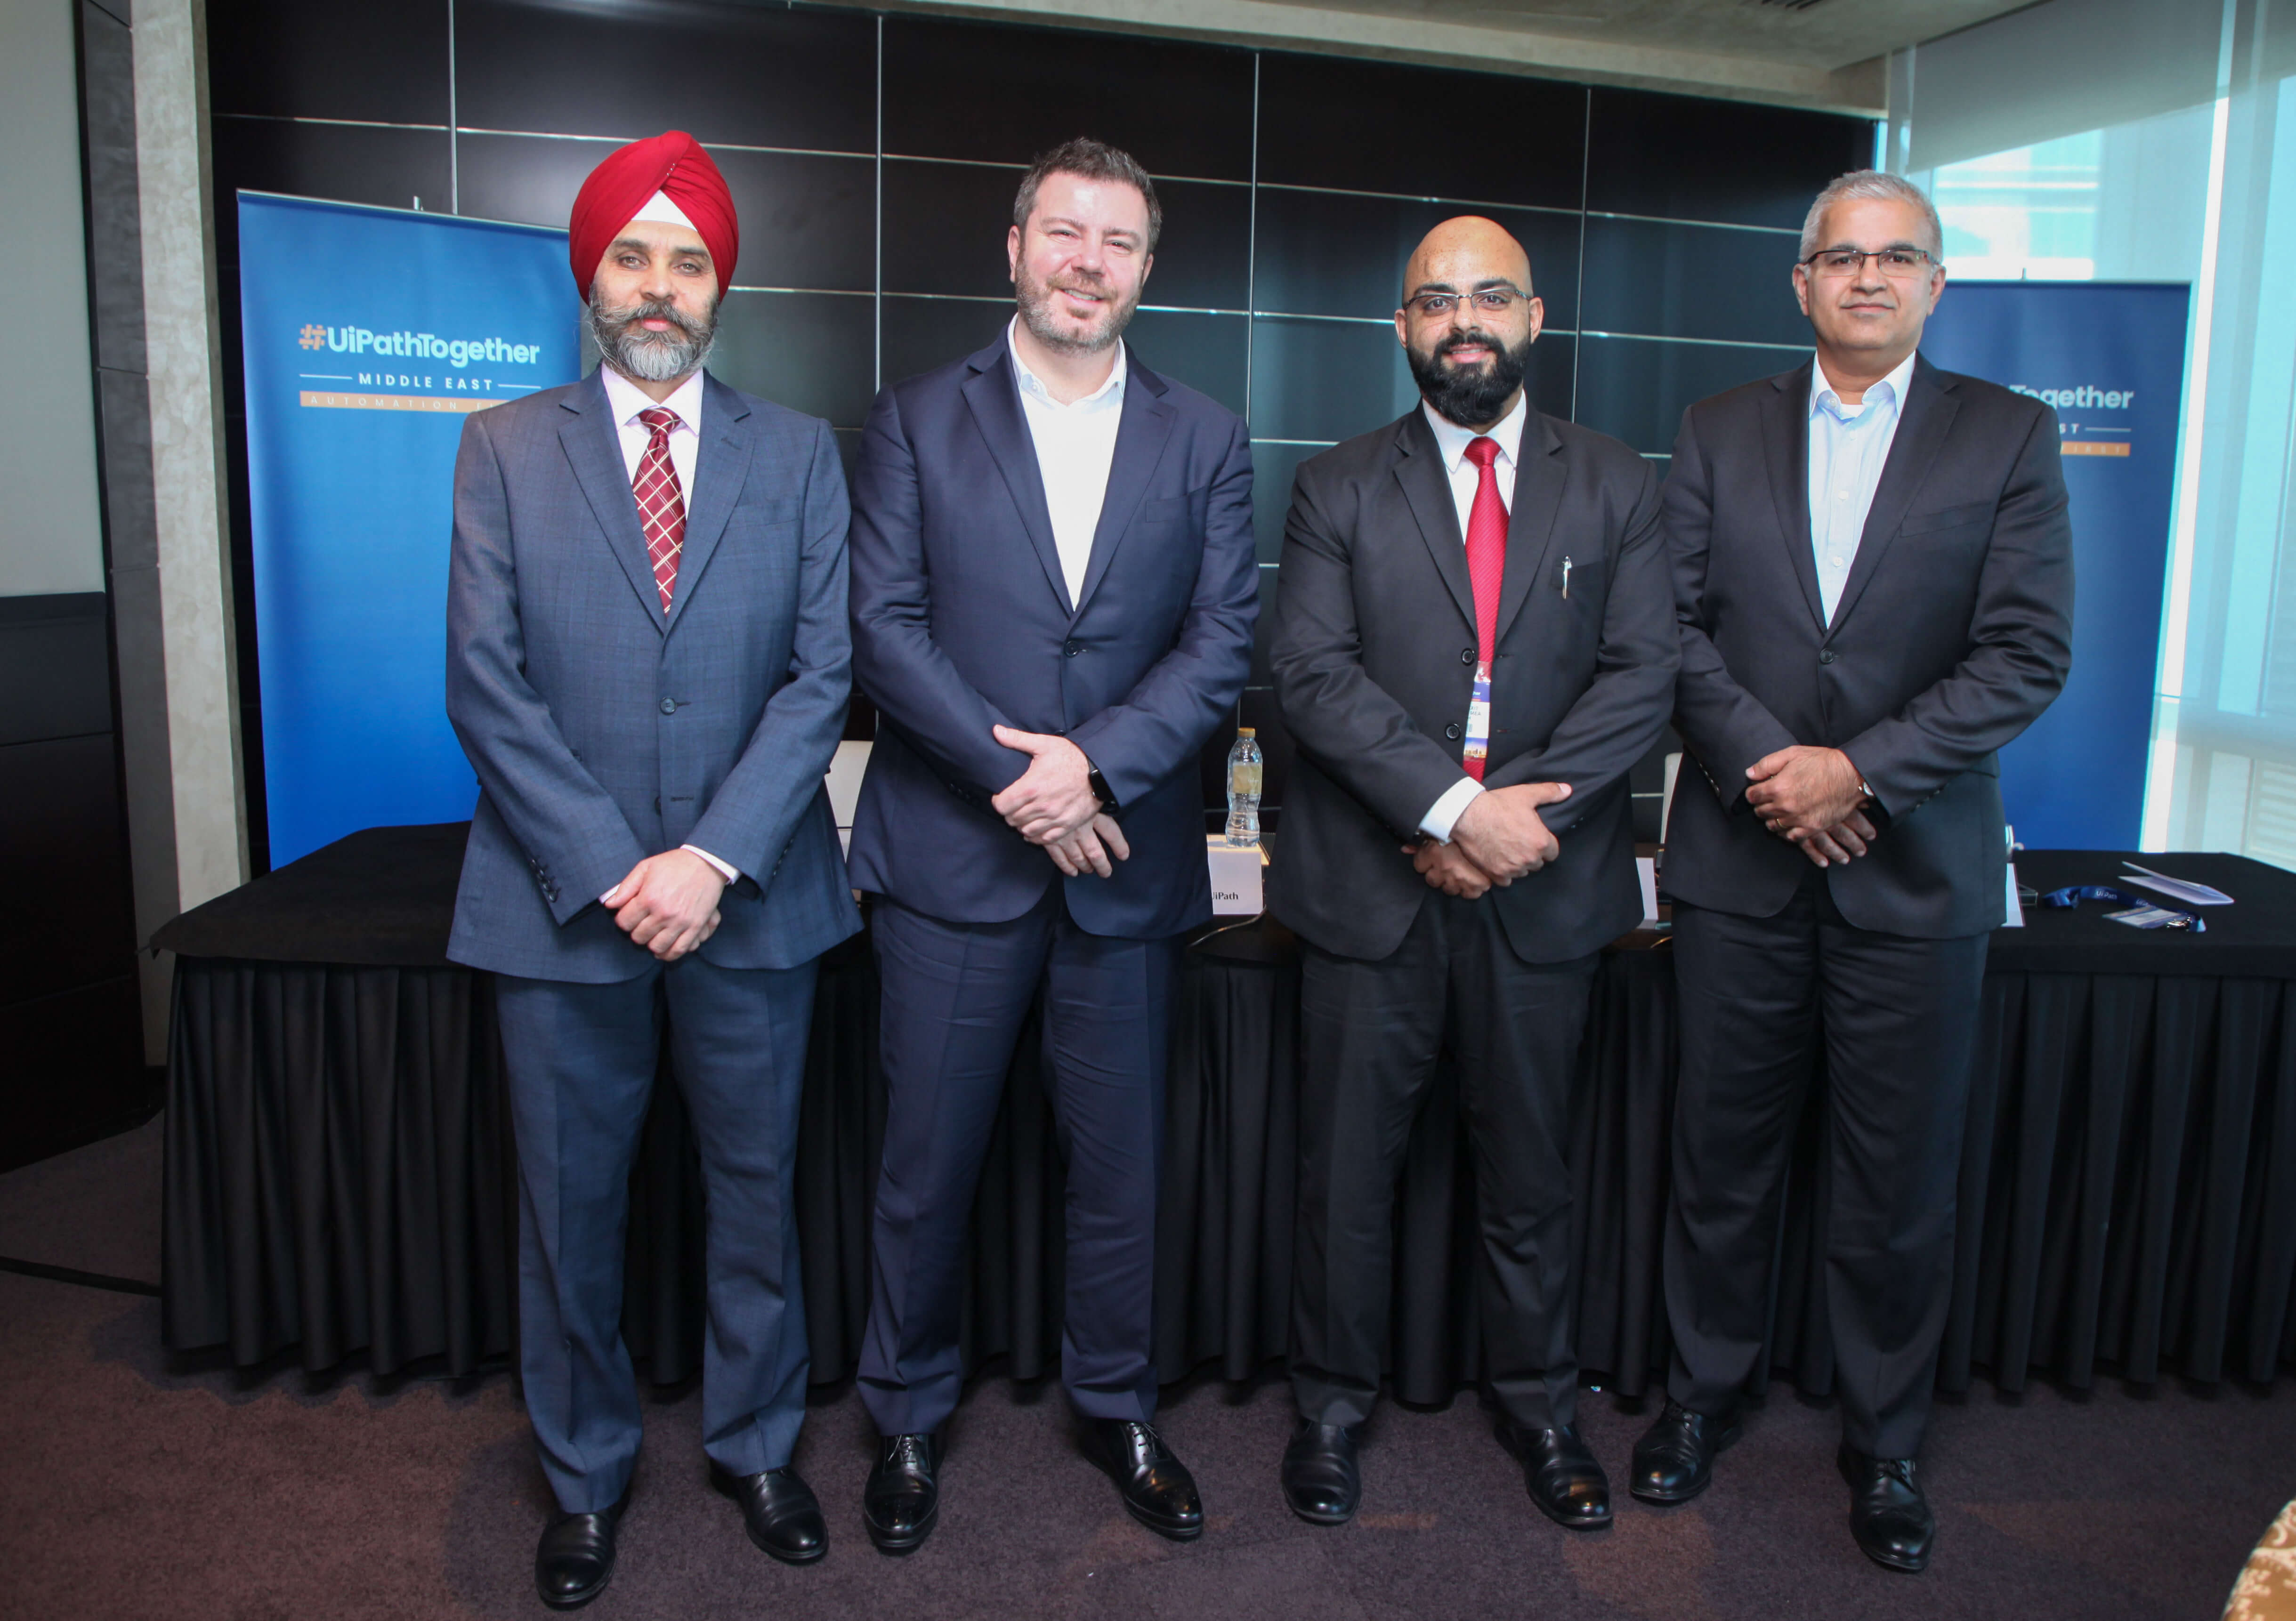 Robotic Process Automation tech to accelerate digital transformation